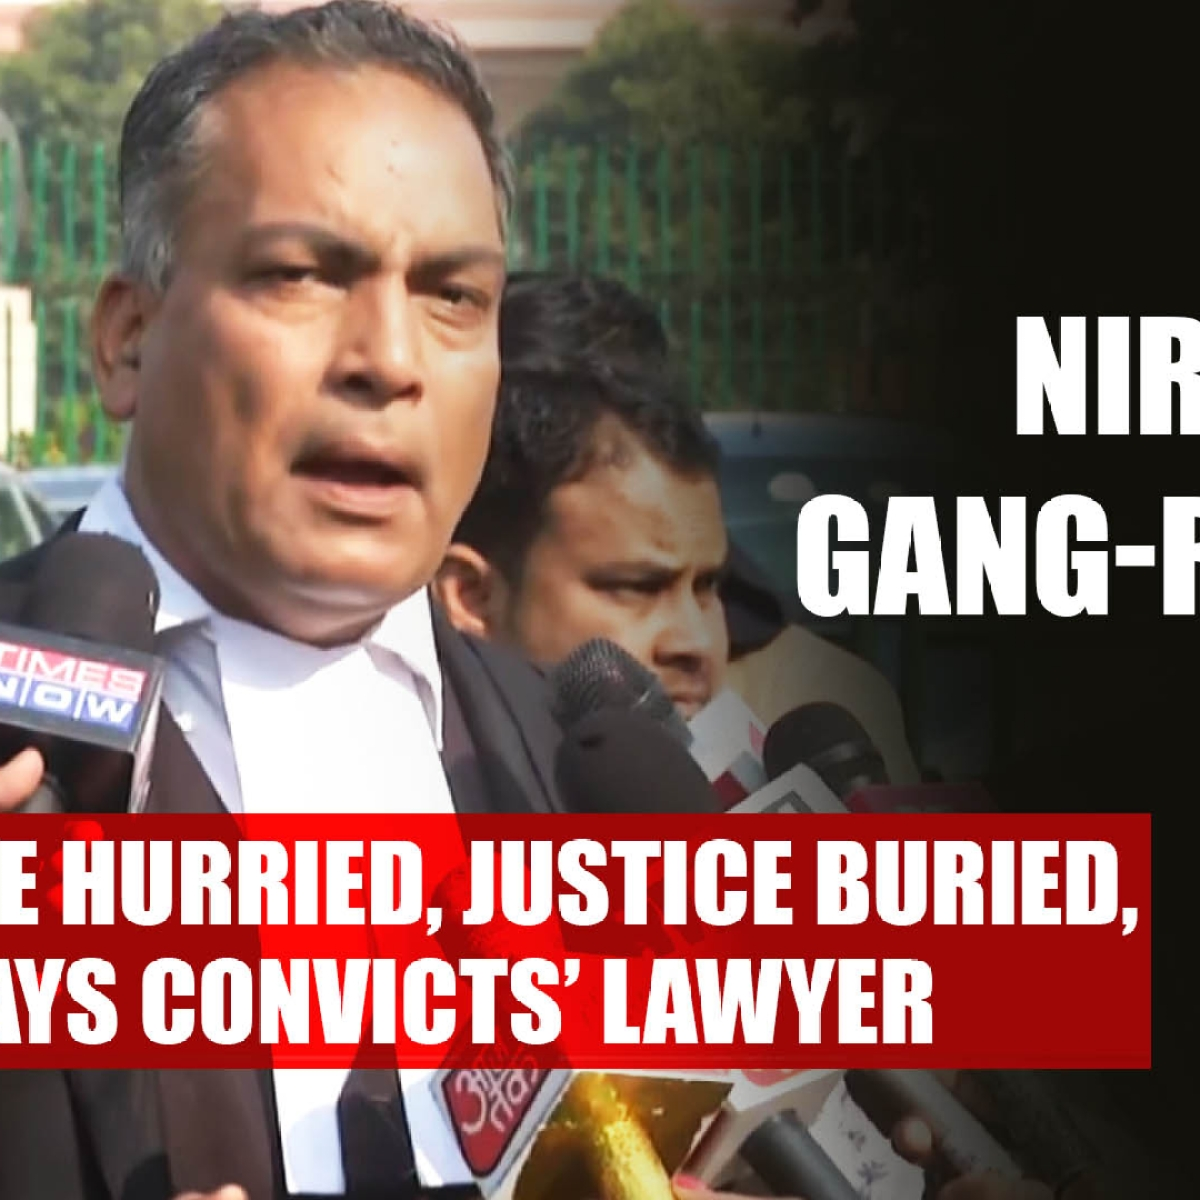 Nirbhaya gang-rape case: Justice hurried, justice buried, says convicts' lawyer